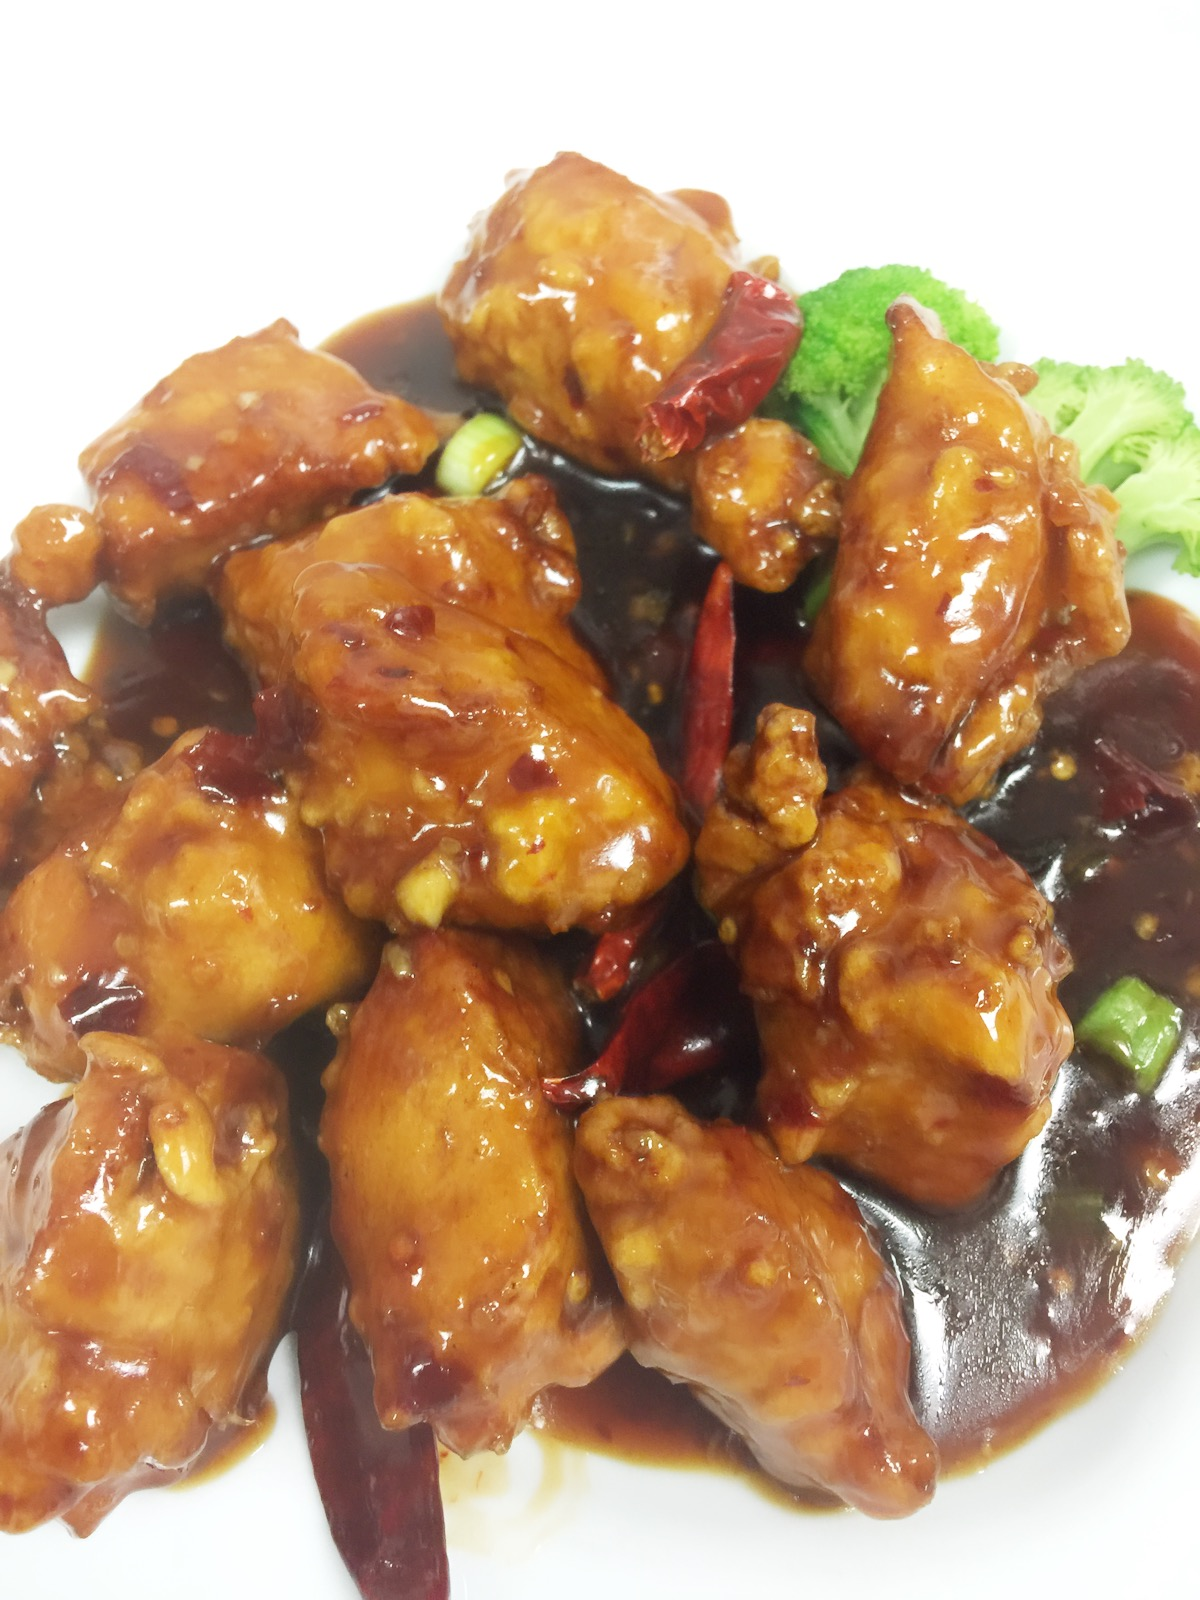 C2. General Tso's Chicken Image